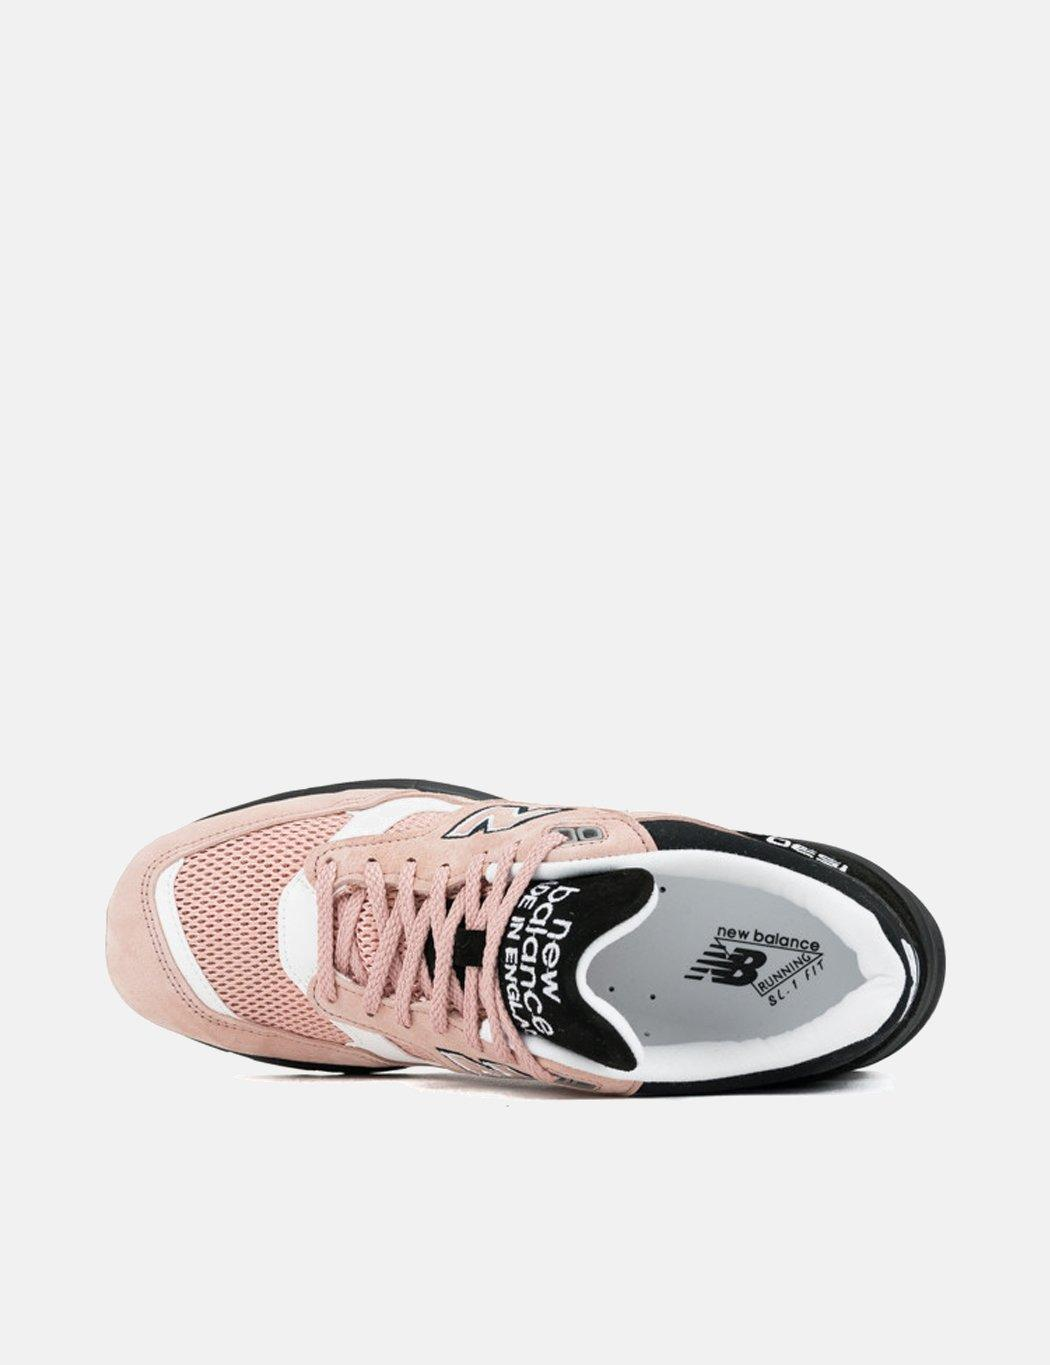 best value 4b164 fd172 Men's Pink 1530 'made In England' (m1530svs) Sneakers